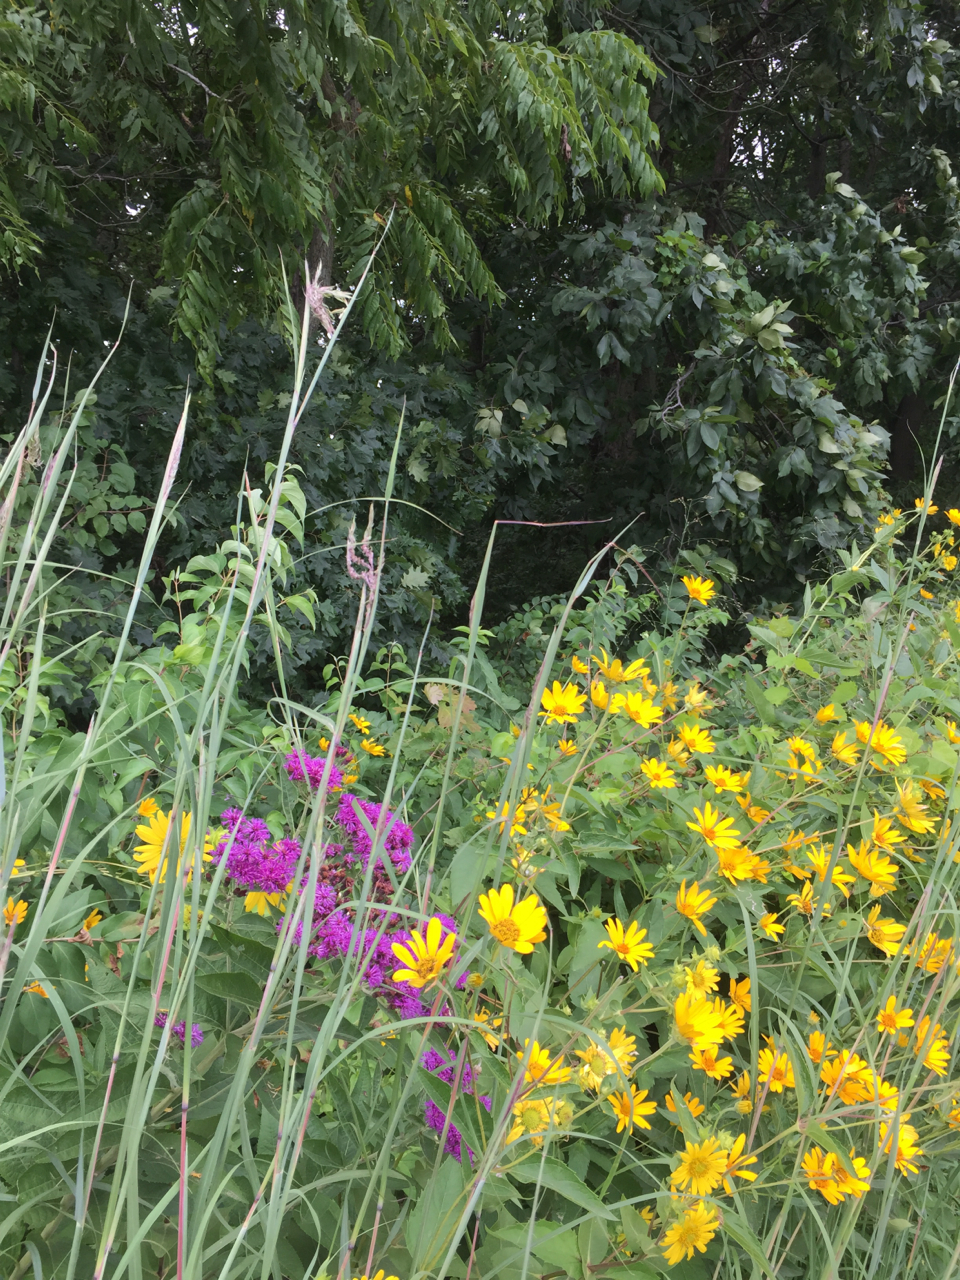 Big Bluestem, asters, and prairie sunflowers compete for sunlight (and admiration) along the shaded slope.